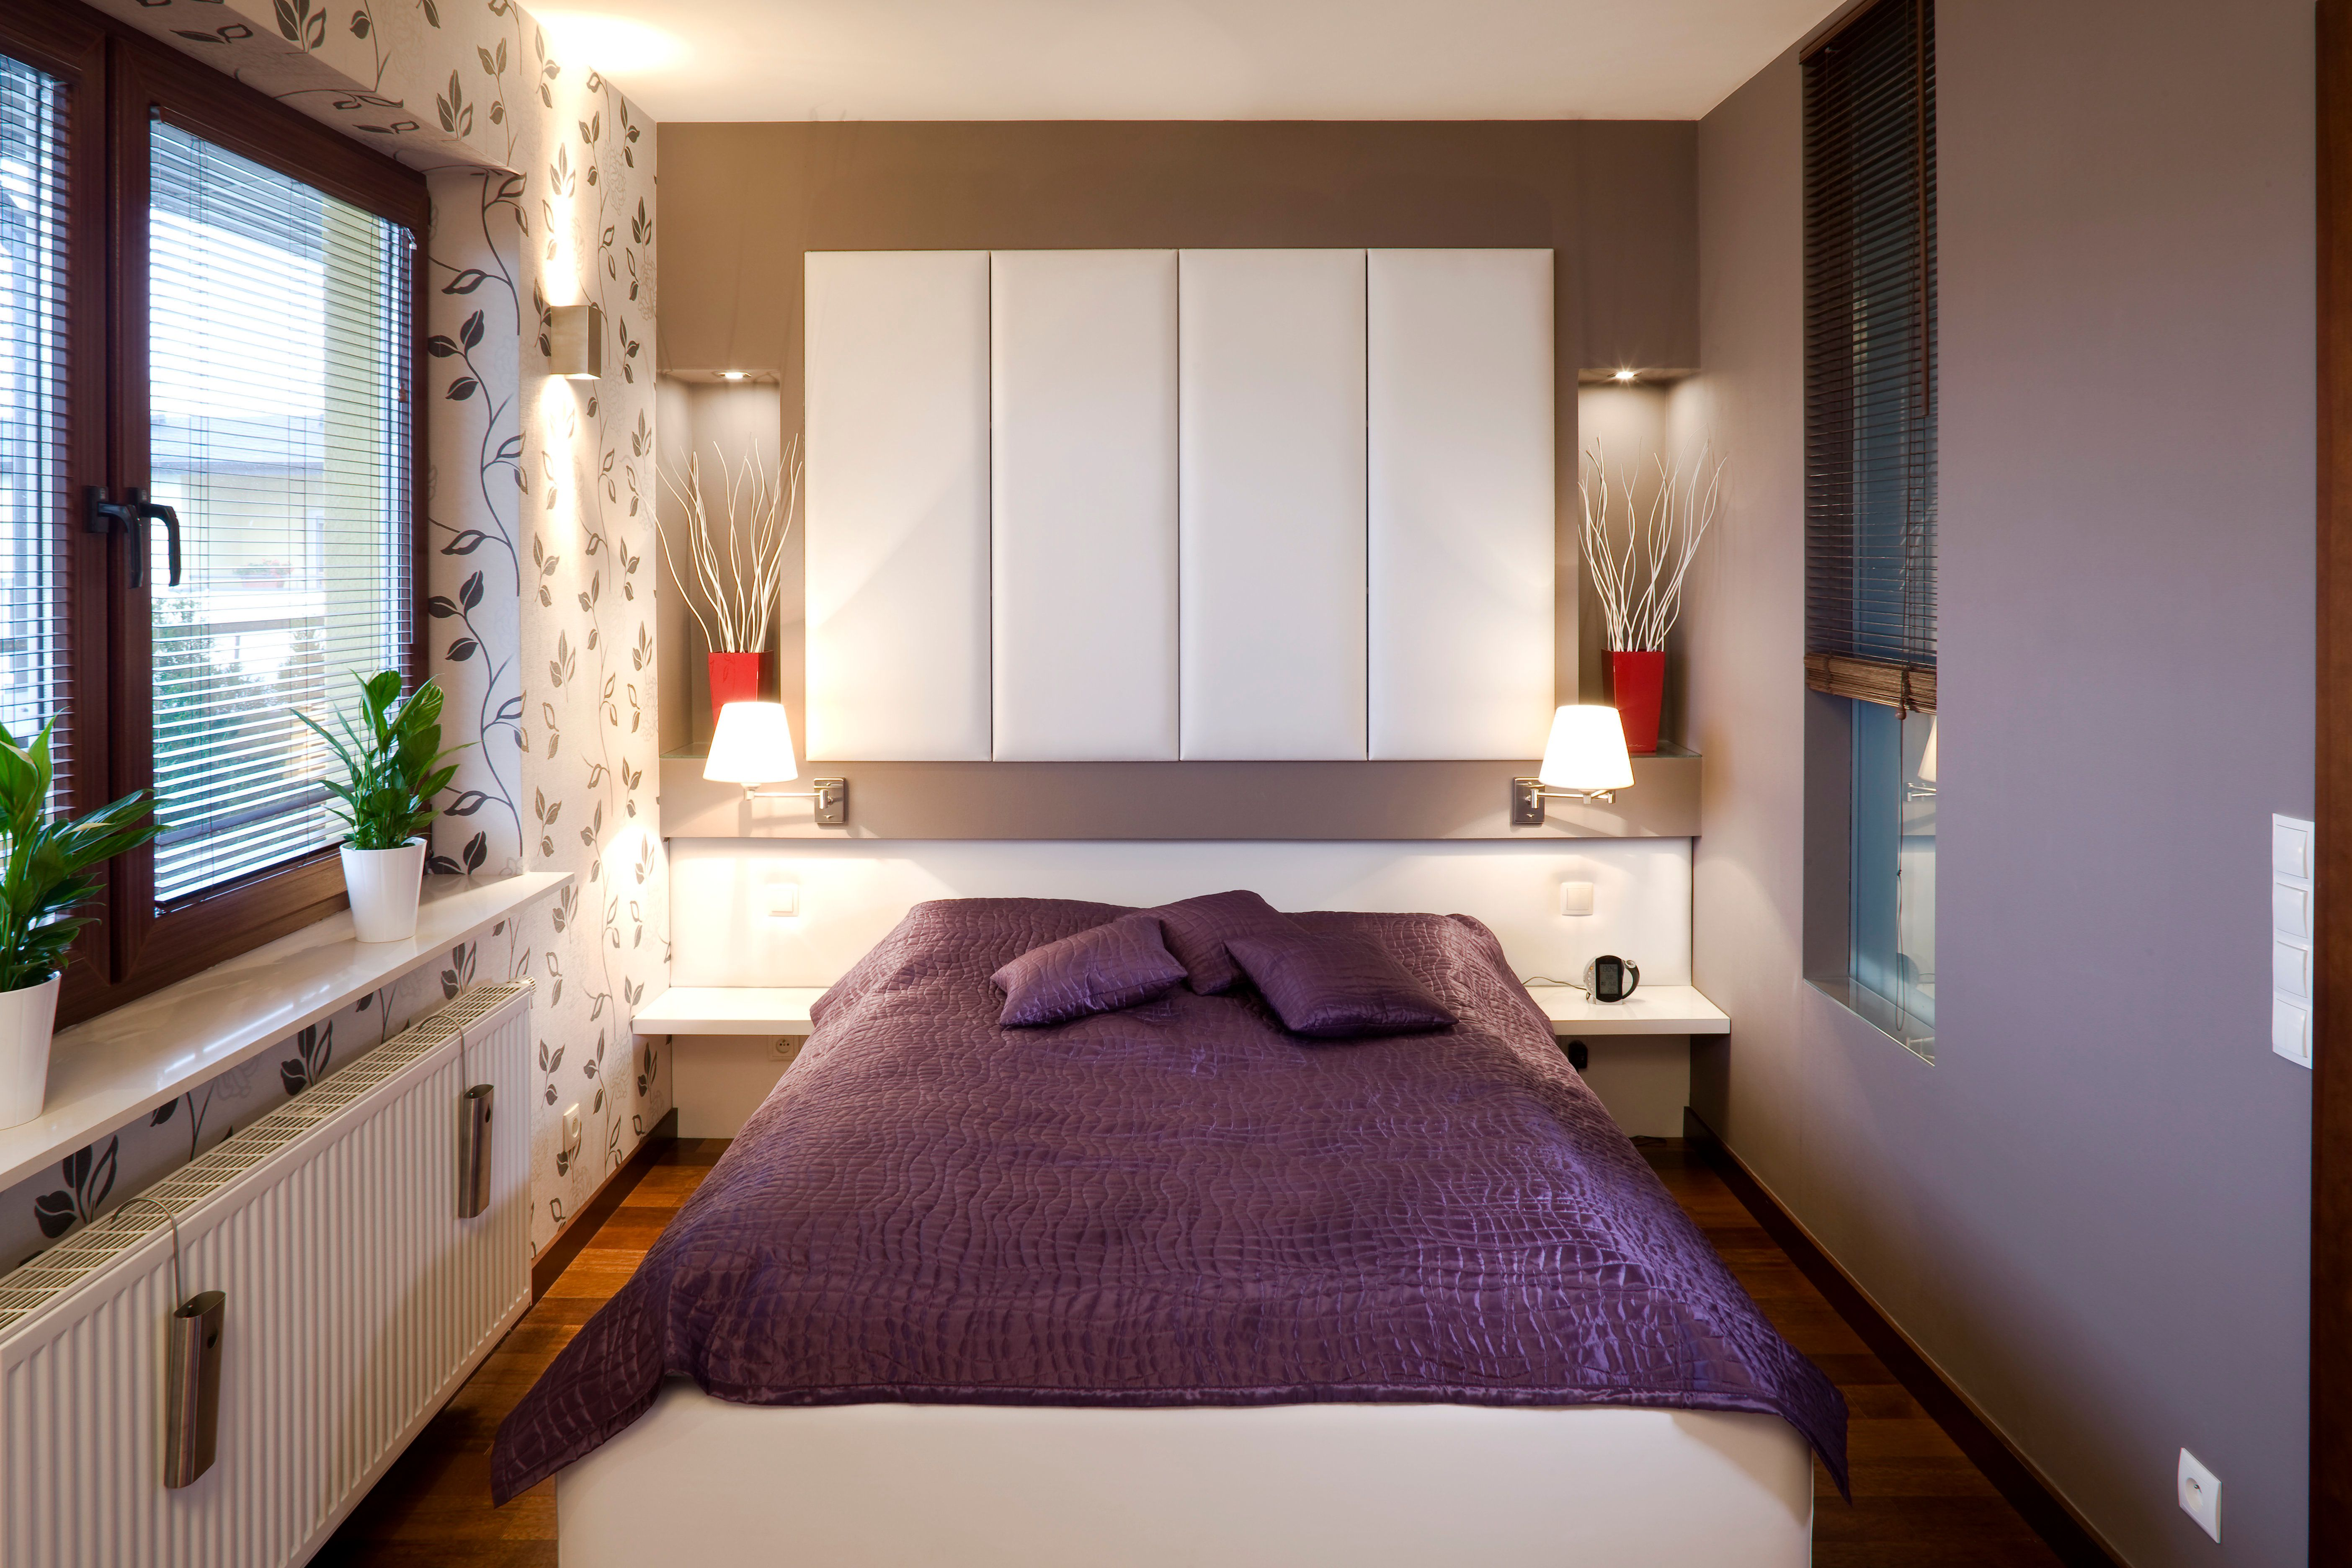 Multifunctional Bedroom Furniture For Small Spaces